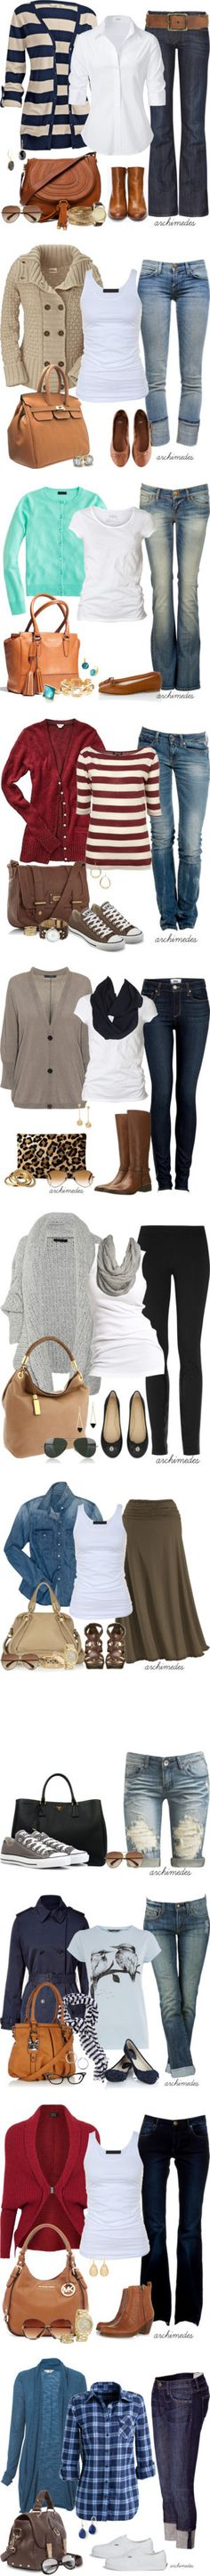 everyday outfits for fall.. i need to shop!